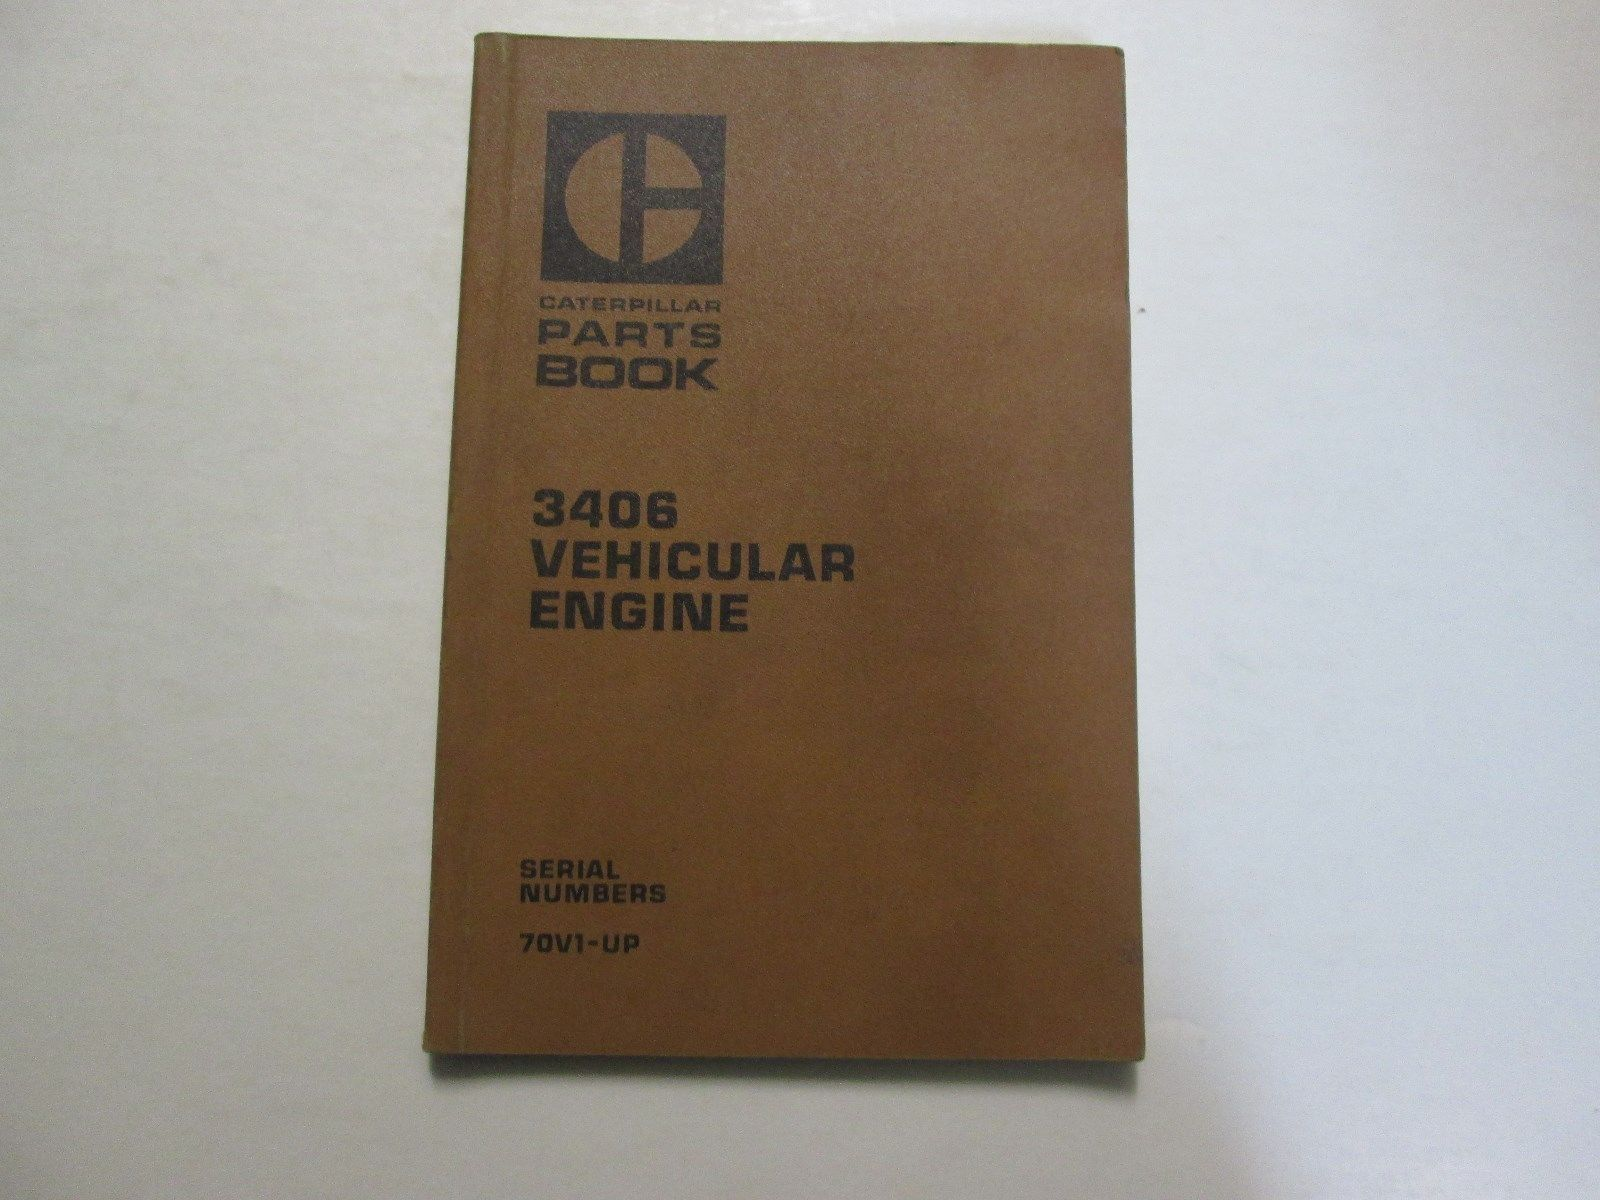 Caterpillar 3406 Vehicular Engine Parts Book Manual 70V1-UP USED OEM CATERPILLAR